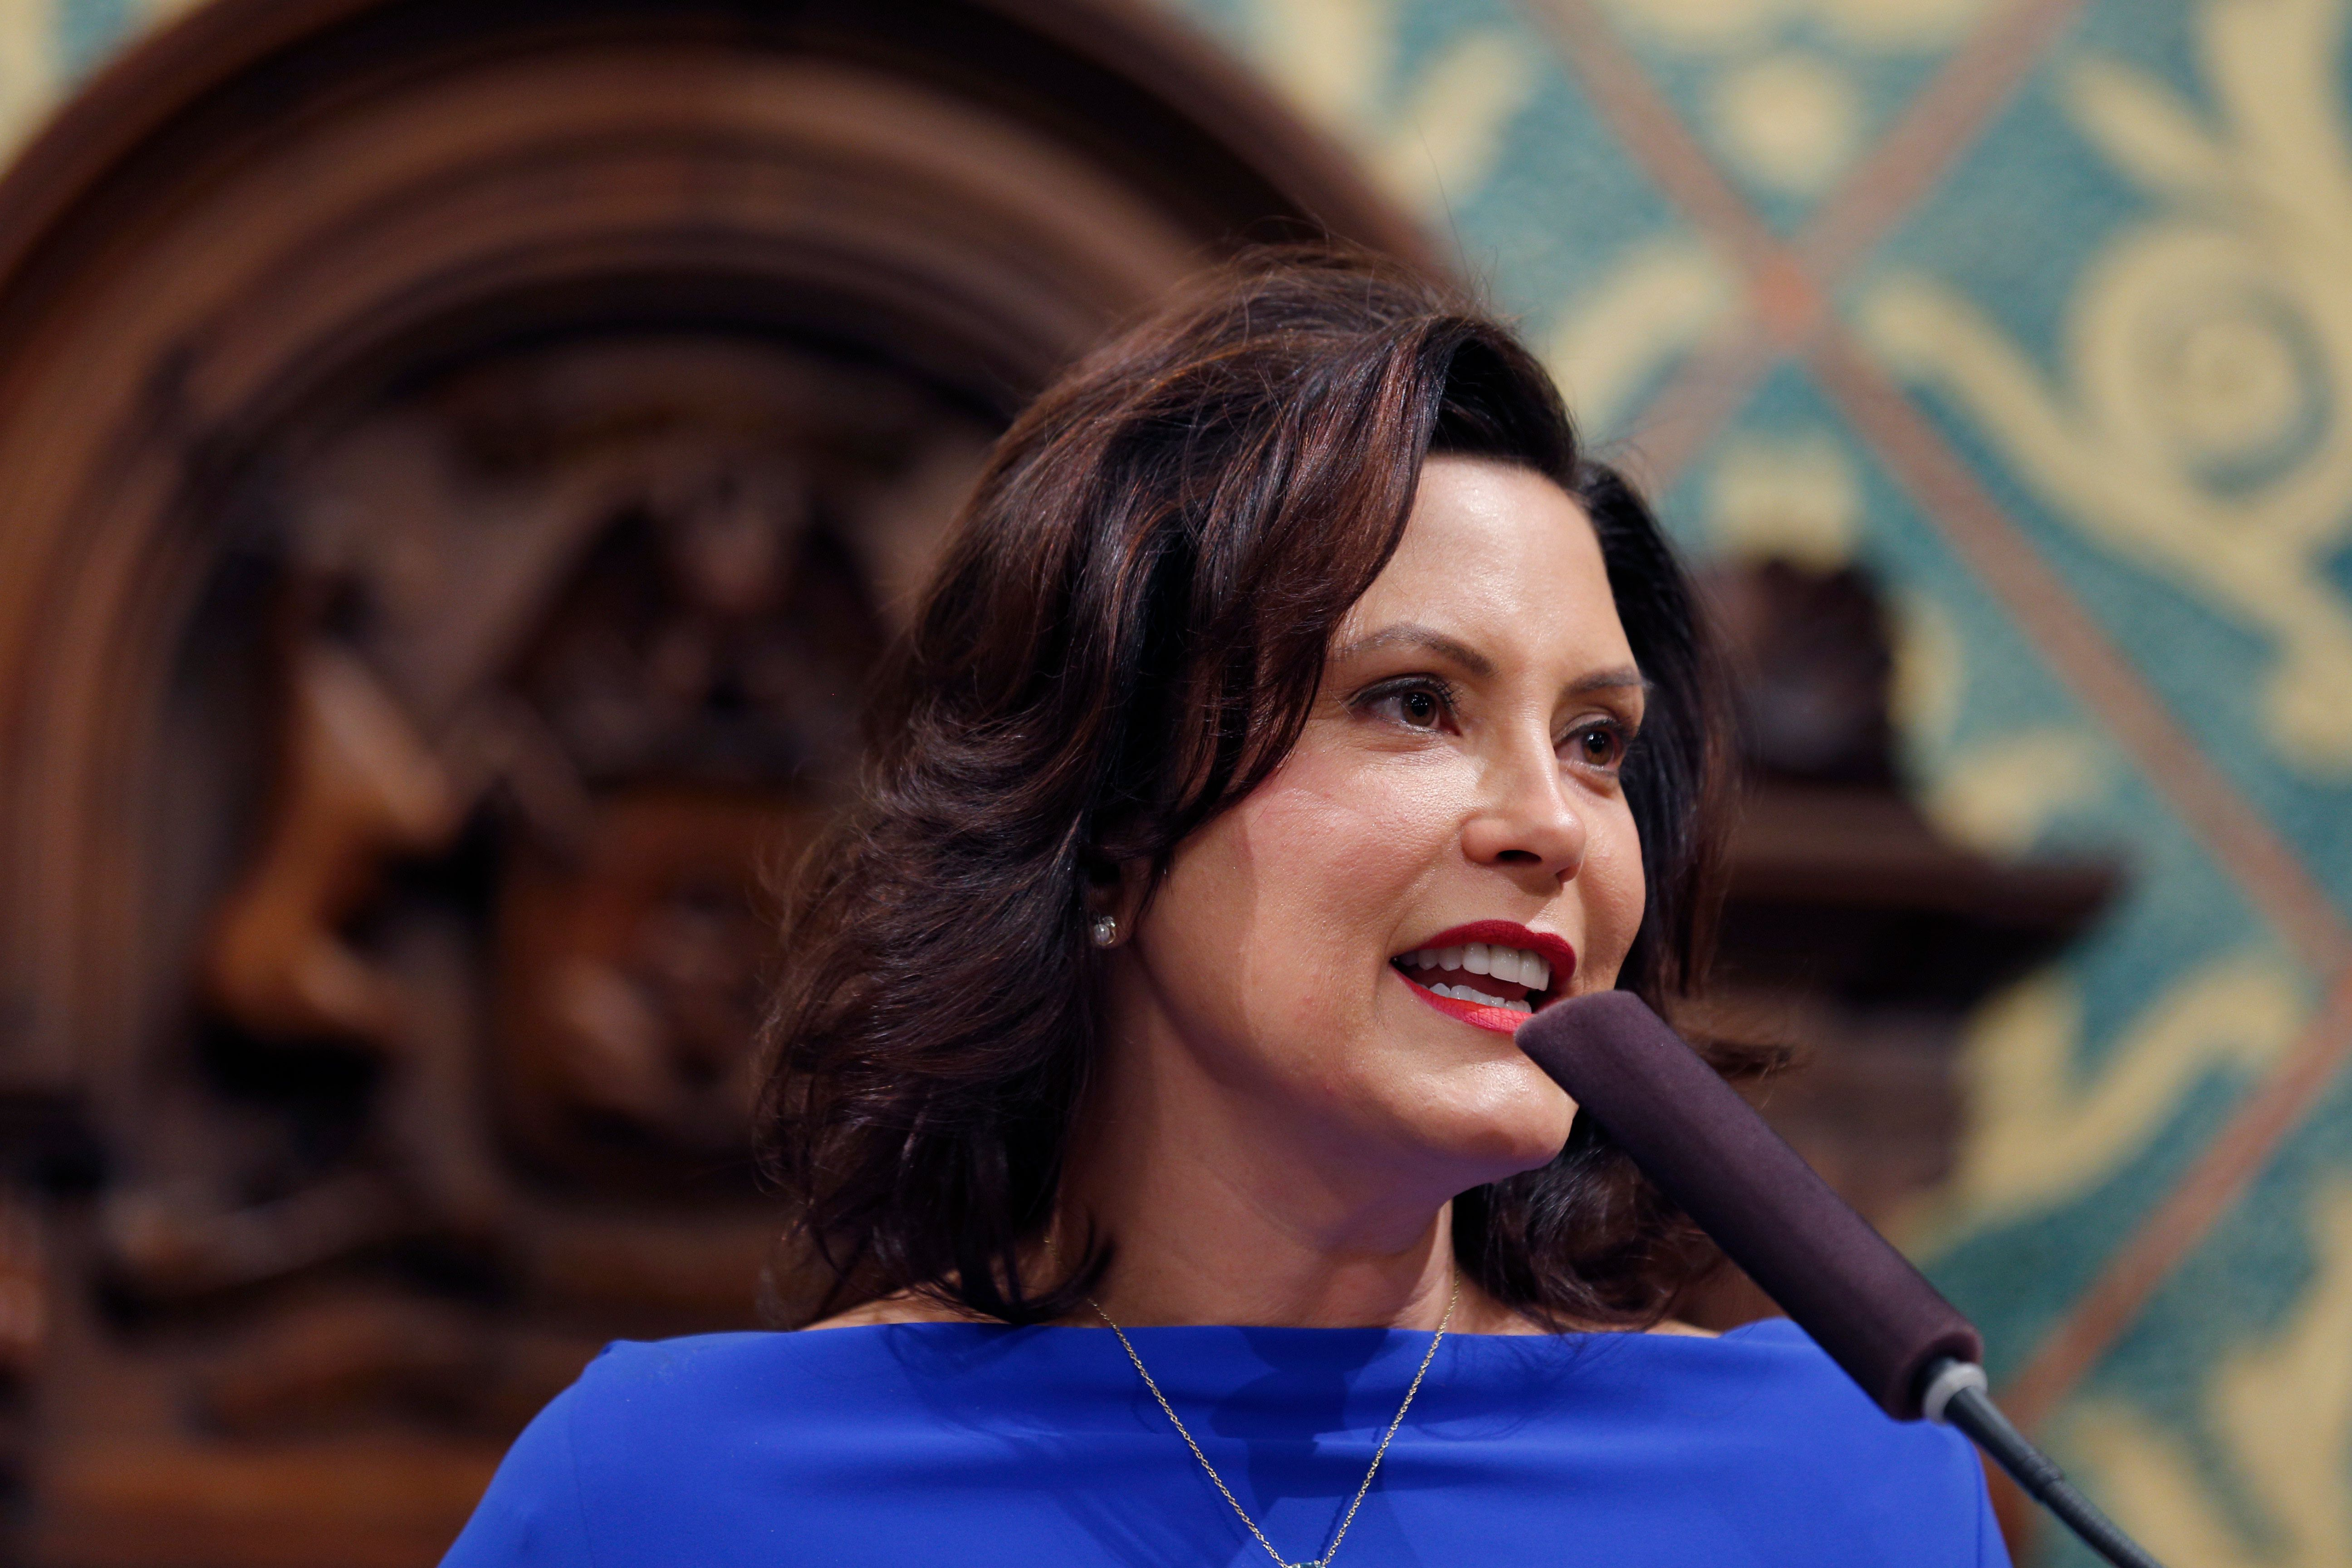 AfterMichigan Gov. Gretchen Whitmer's first State of the State address on Feb. 12, a Detroit news station highlighted s